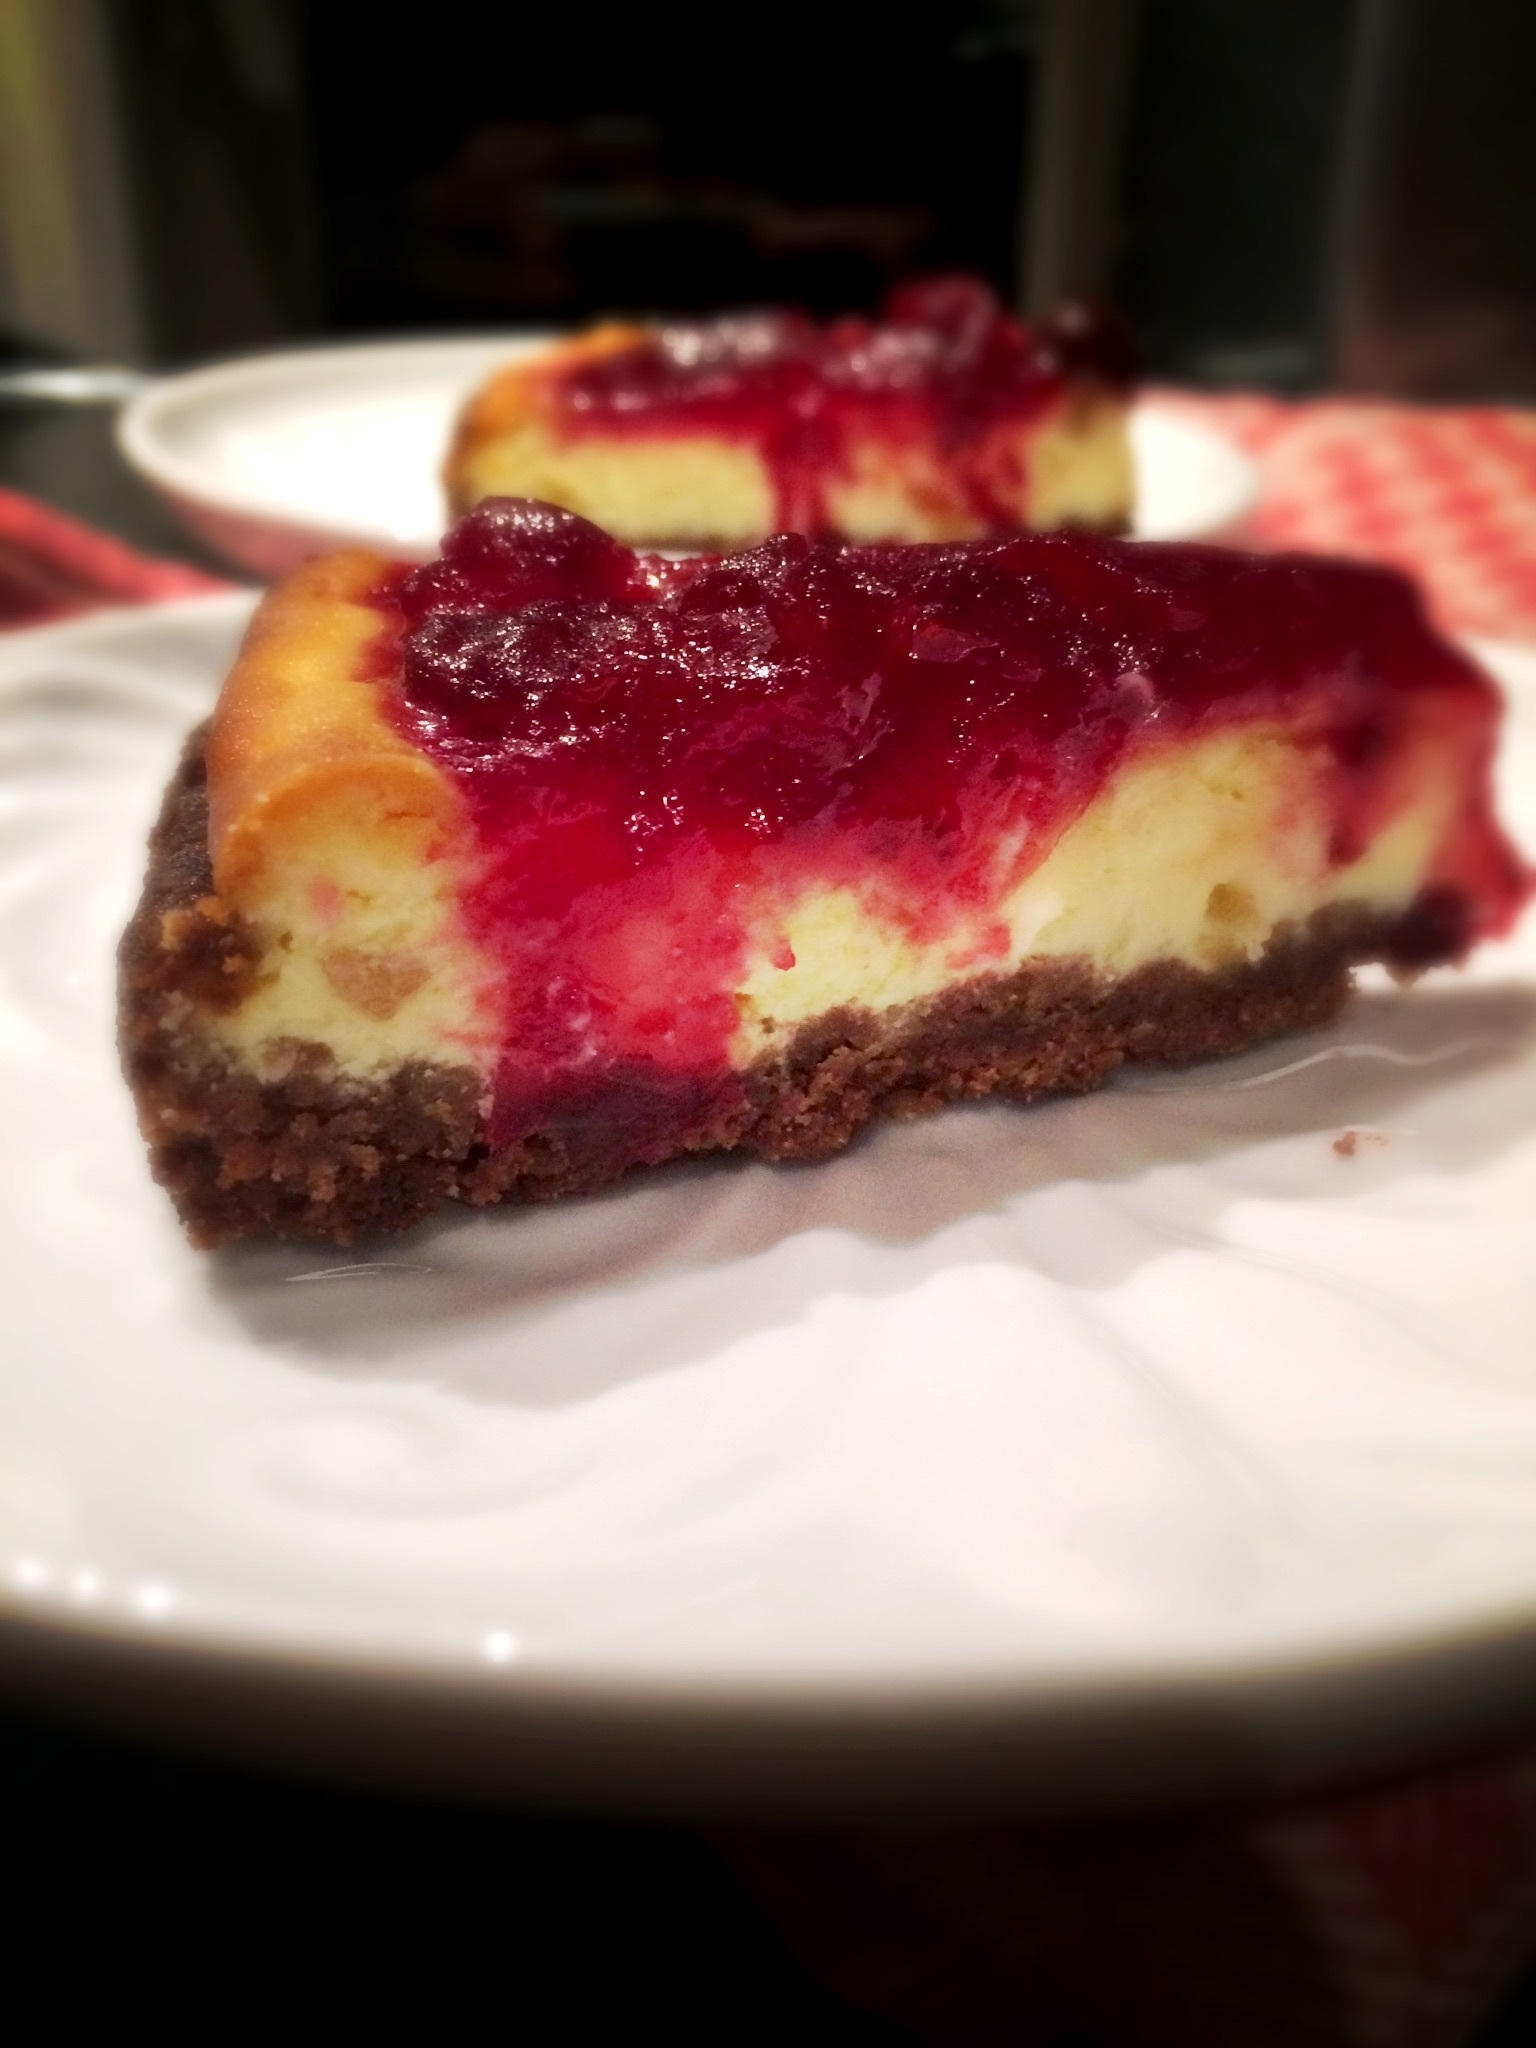 Witte chocolade gember cheesecake met cranberry gember topping